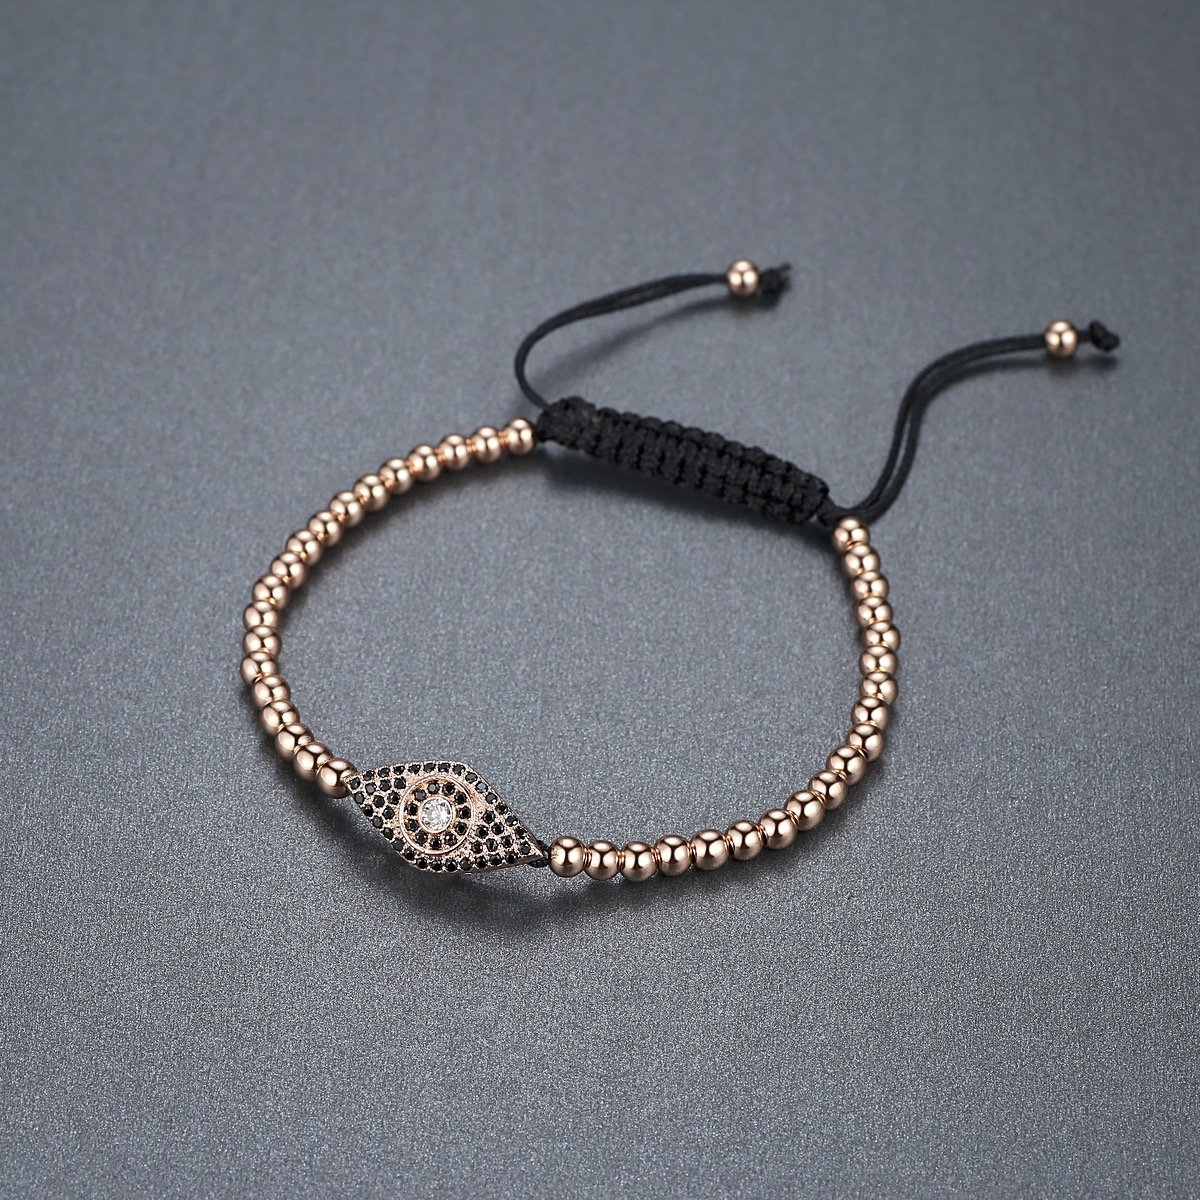 Aoiy Womens Stainless Steel Beads with Cubic Zirconia Bracelet